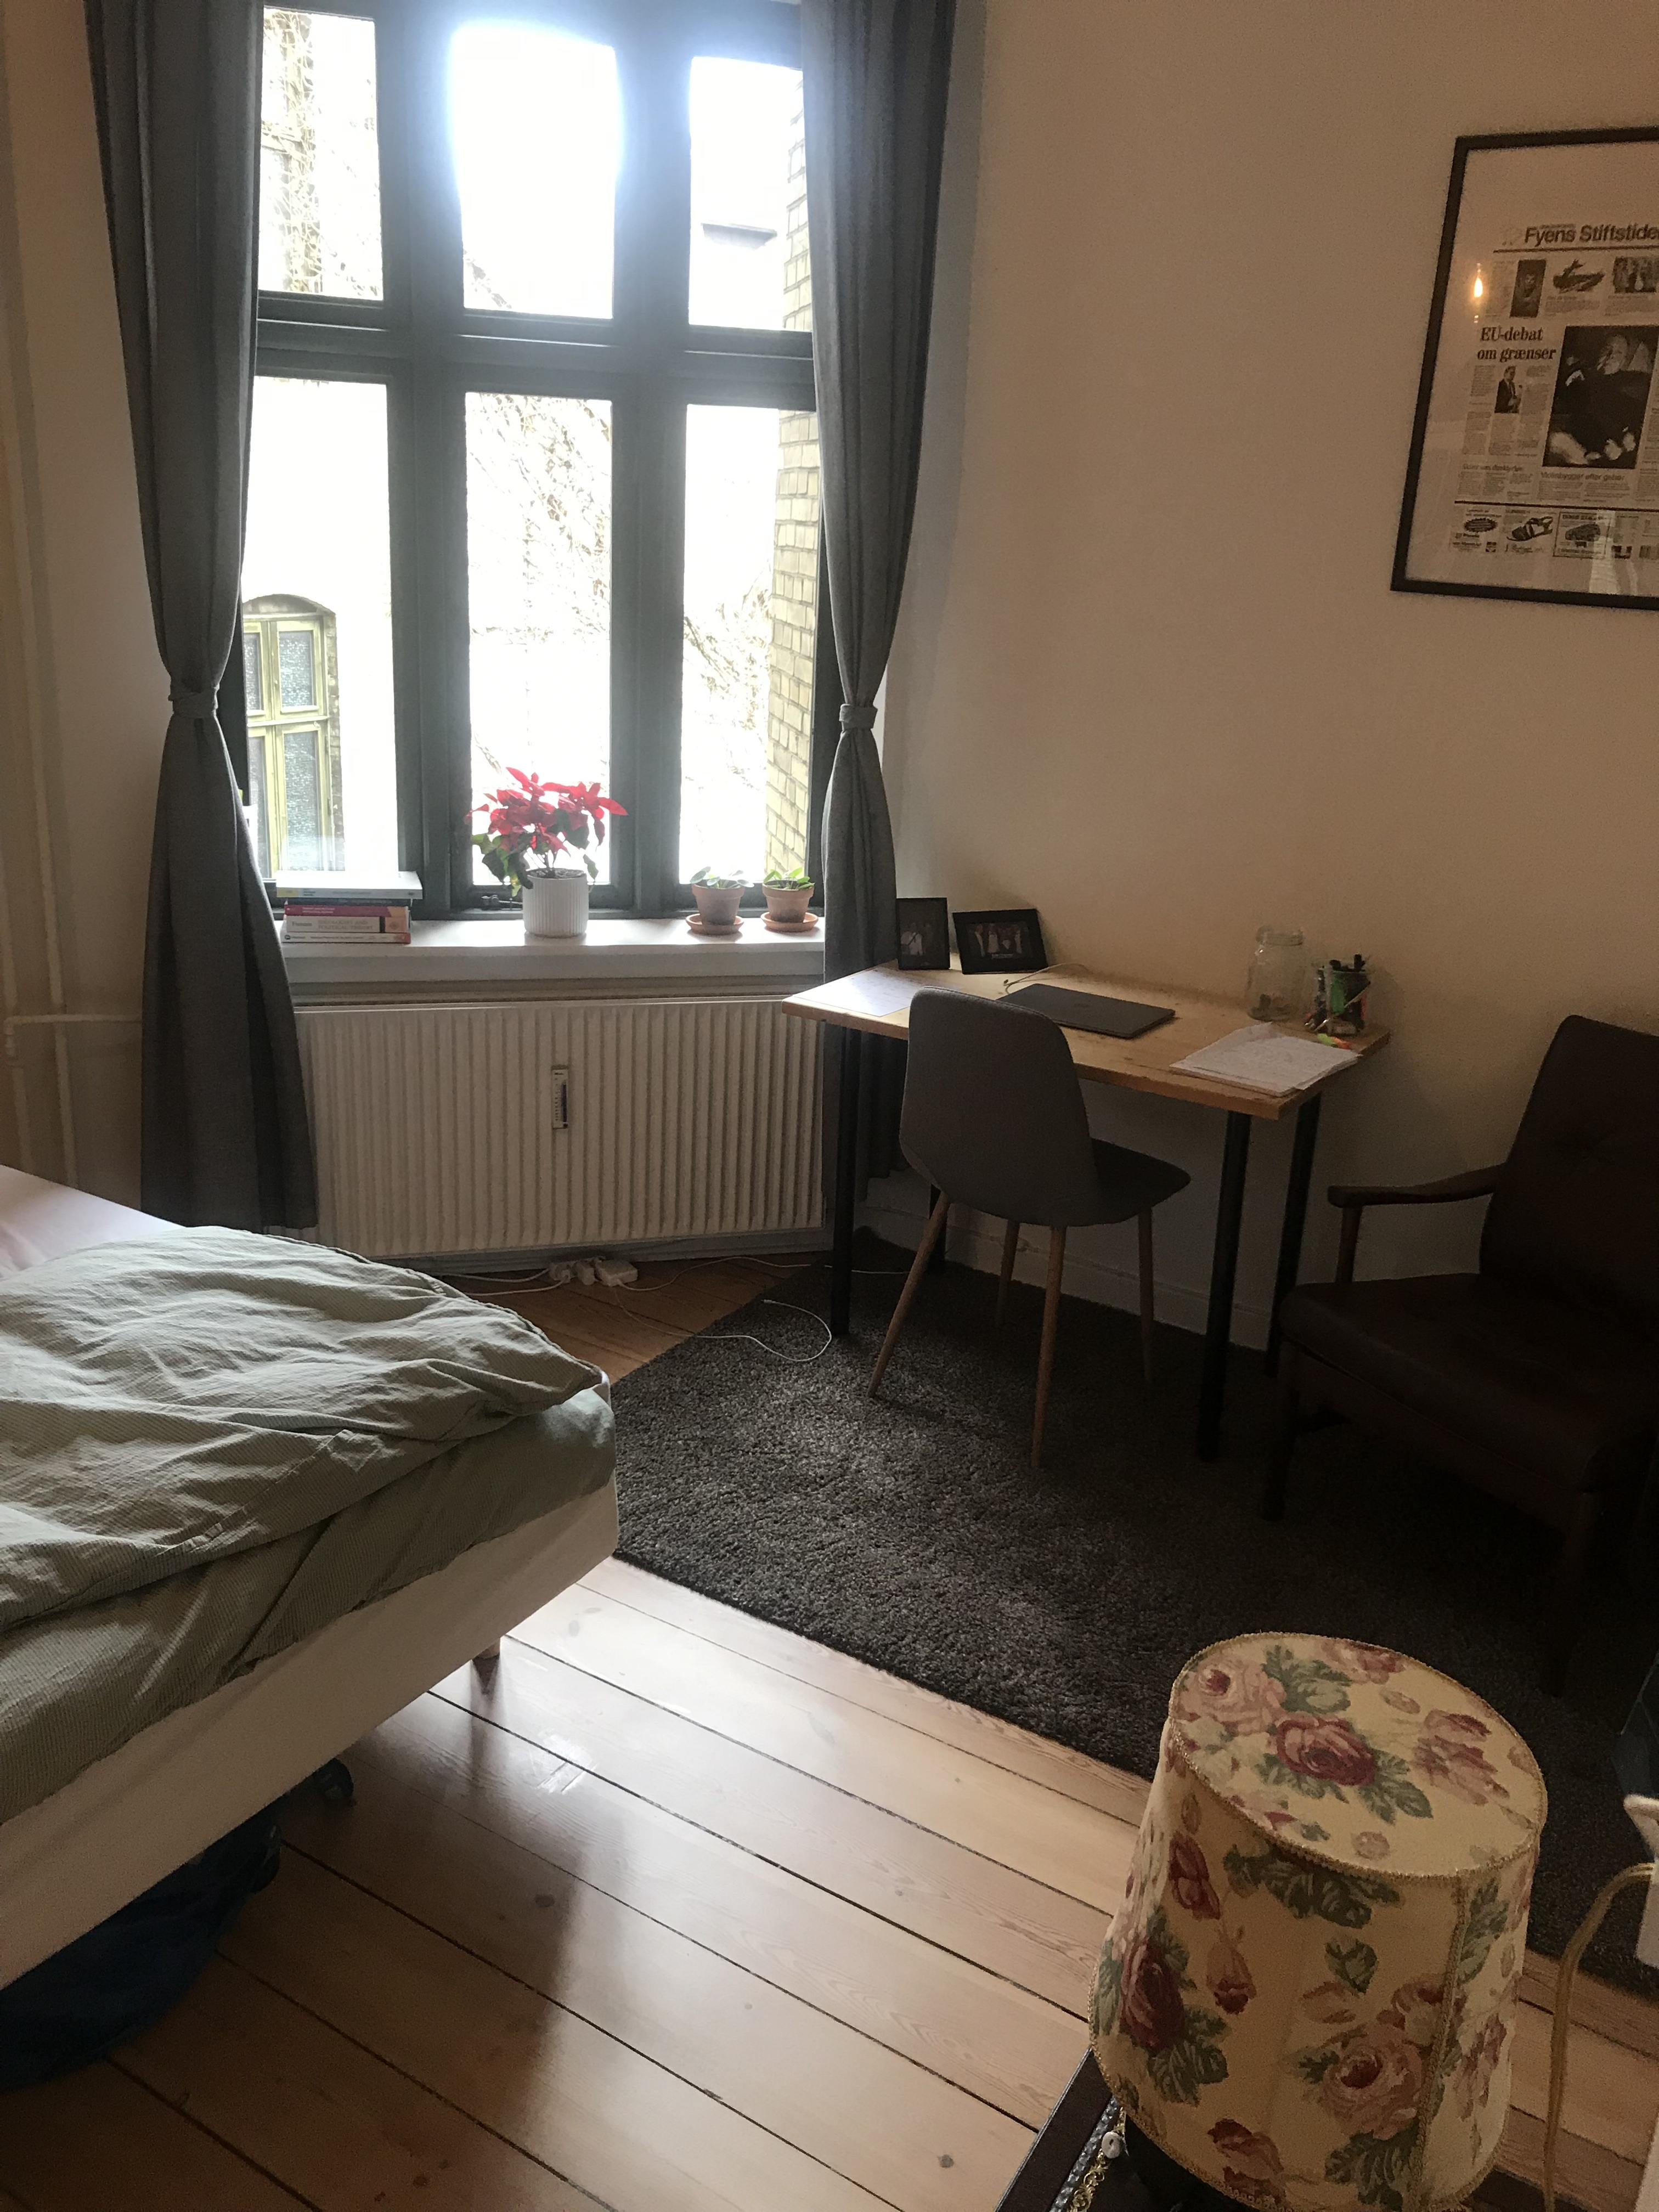 ROOMIE LOOKING FOR 109 m2 APARTMENT ON SURFACE, ODENSE C